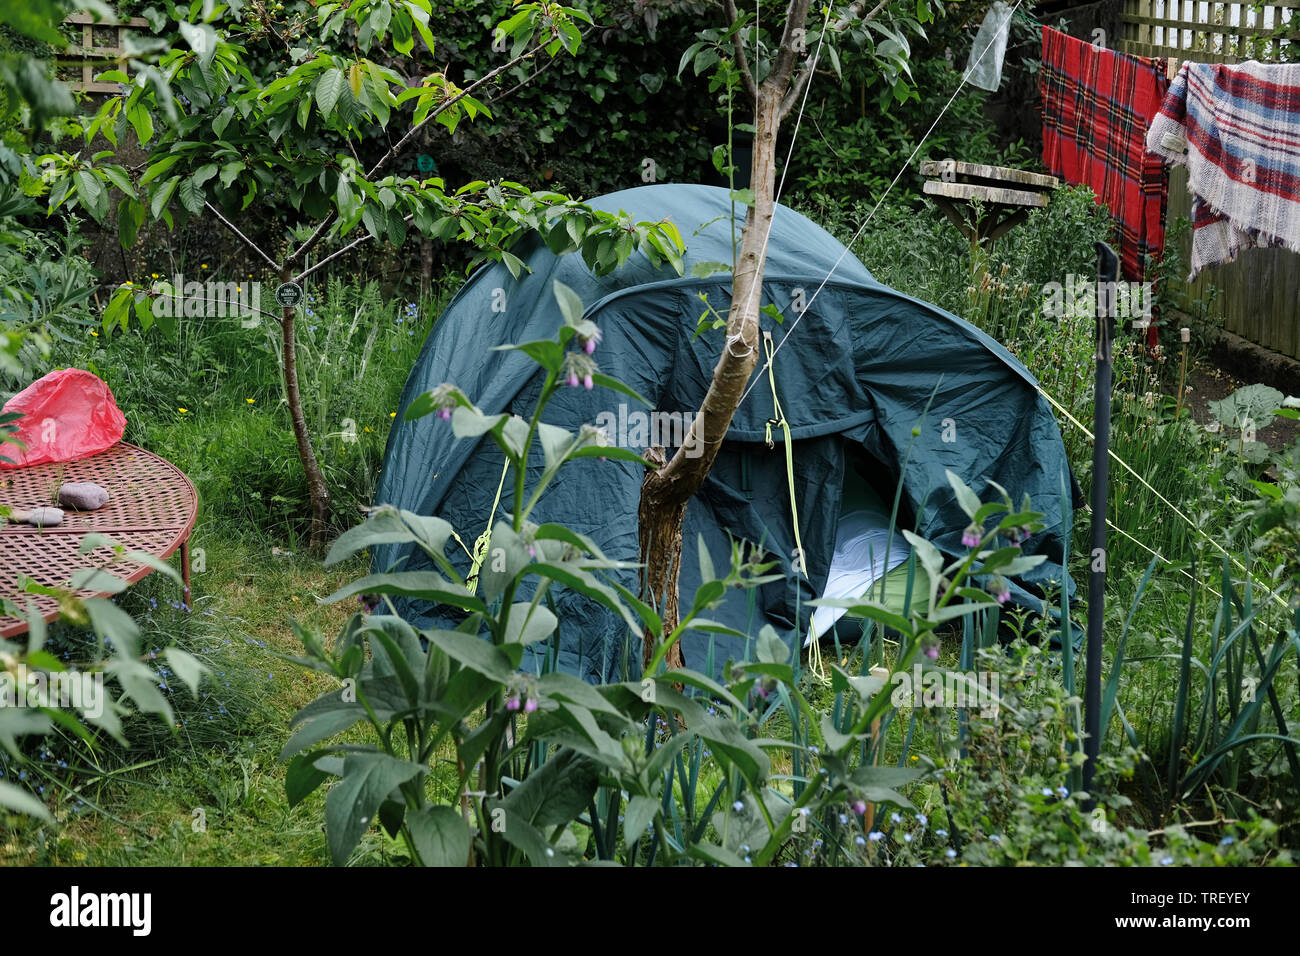 A Tent Set Up In A Very Small Garden Stock Photo Alamy